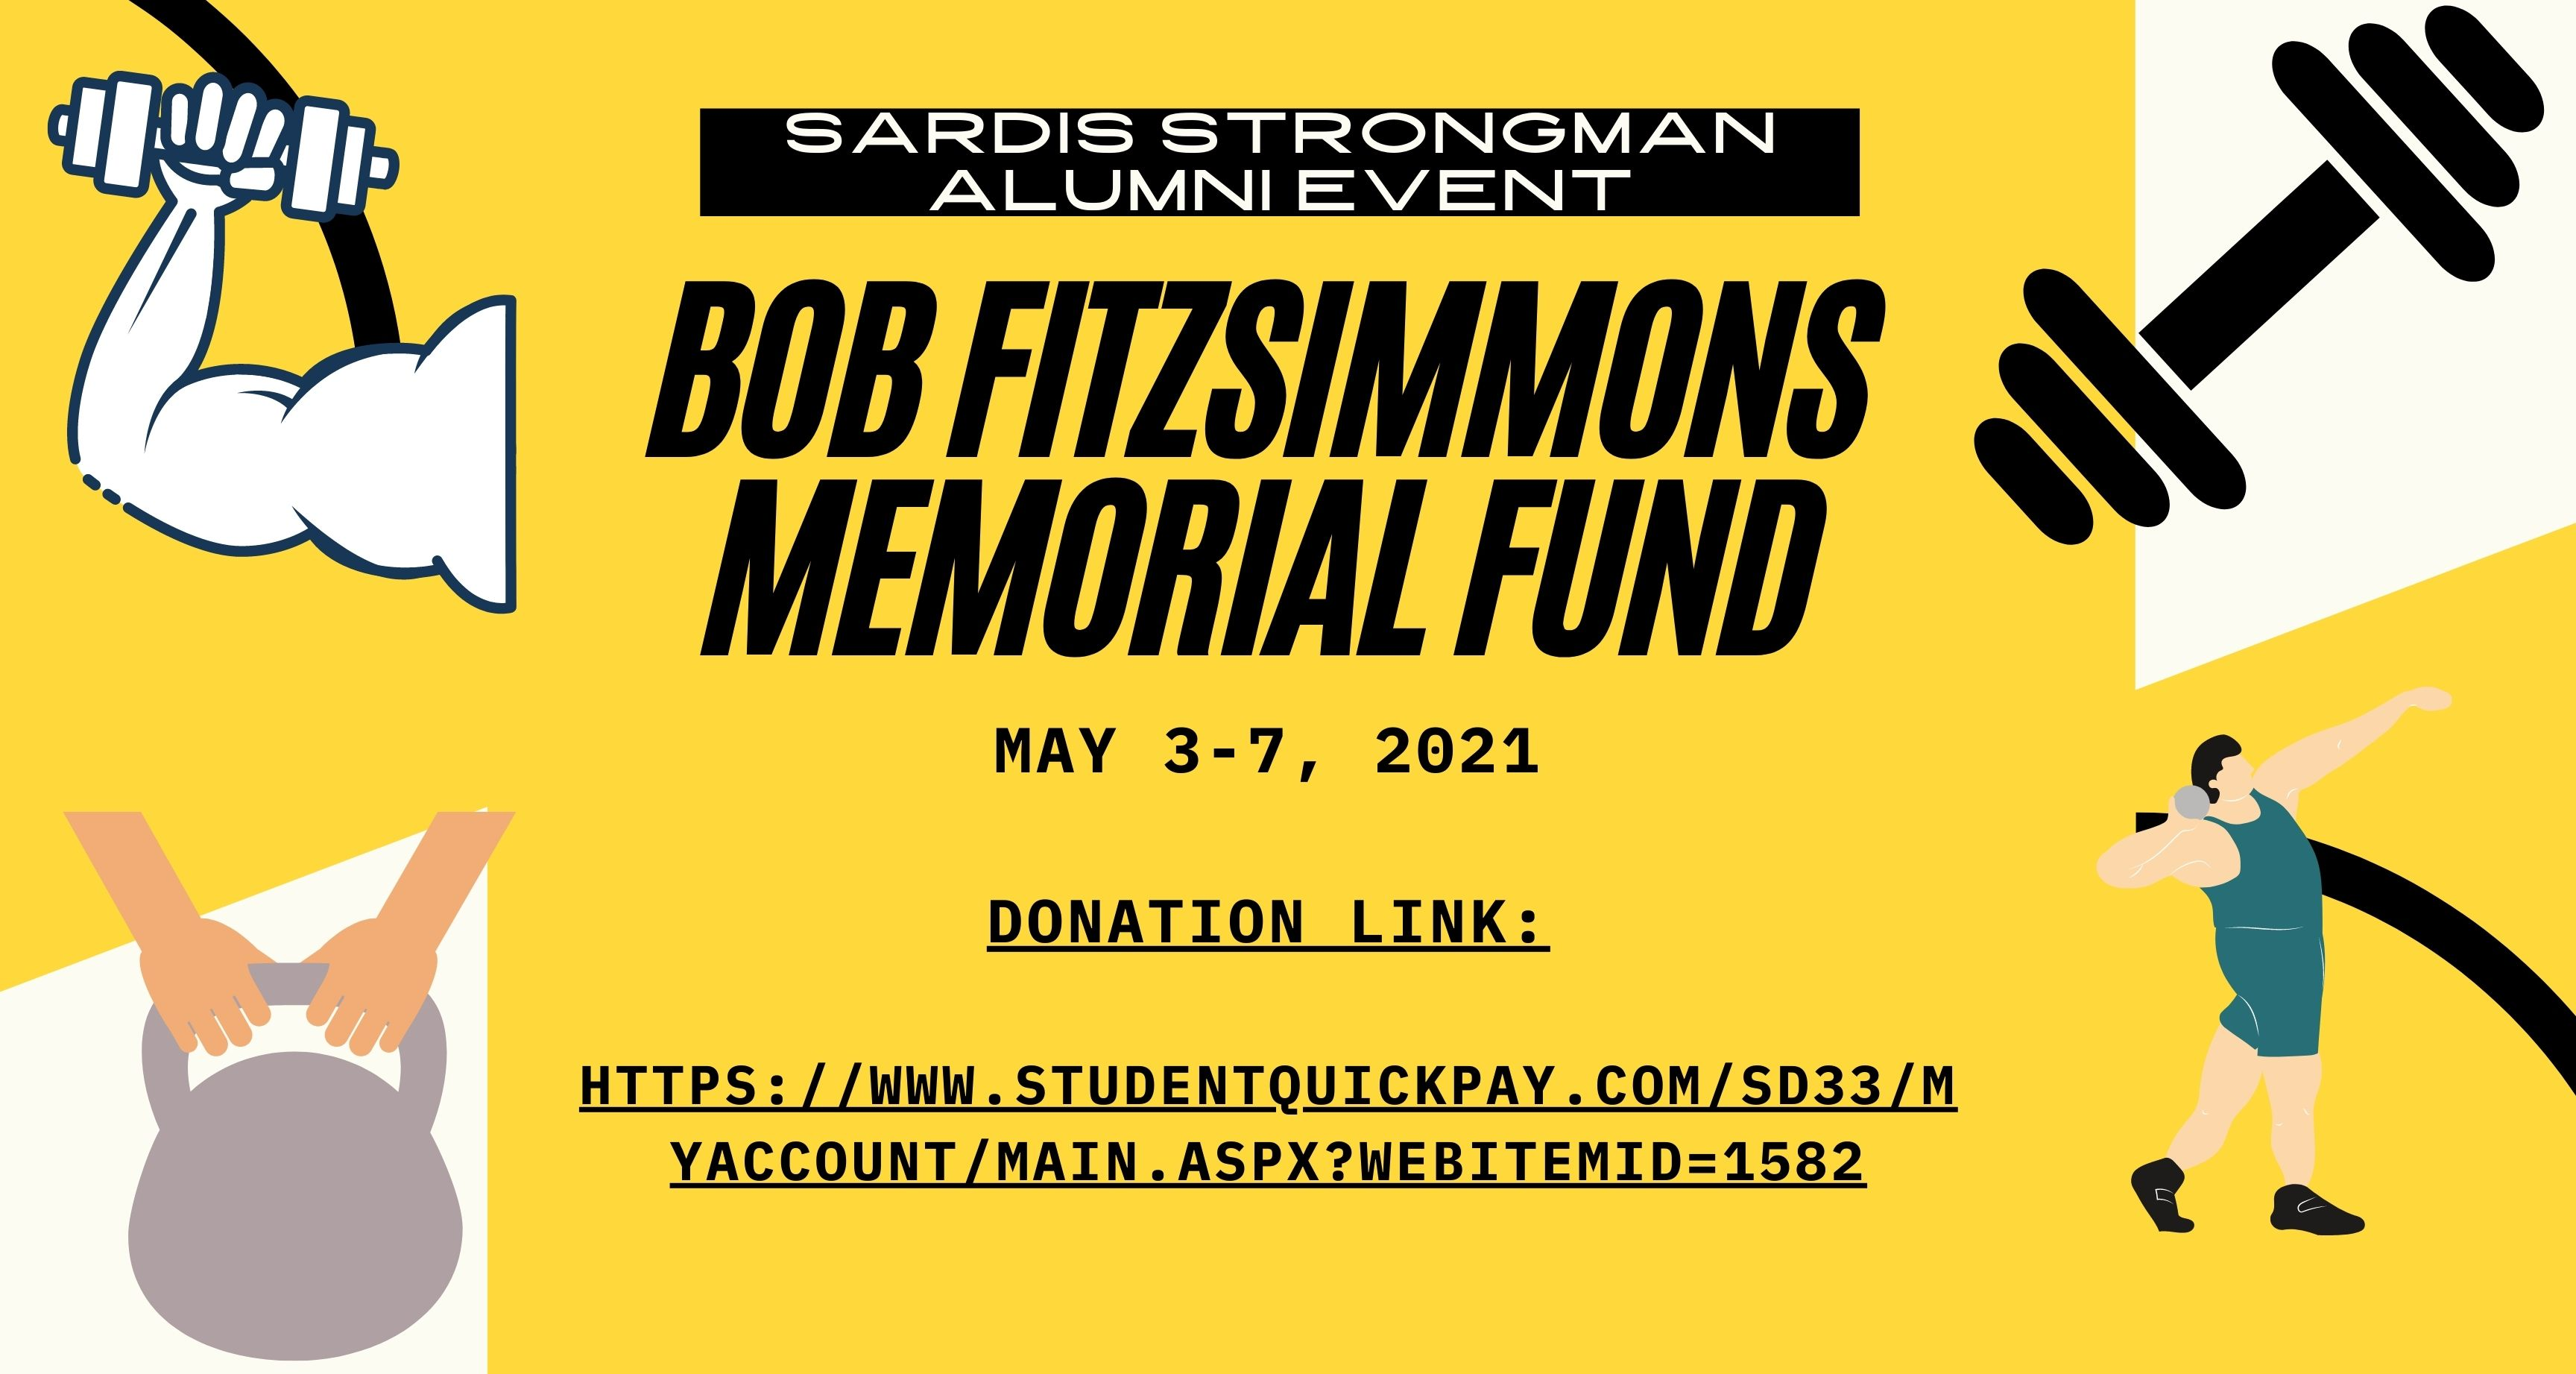 Bob Fitzsimmons Memorial Fund